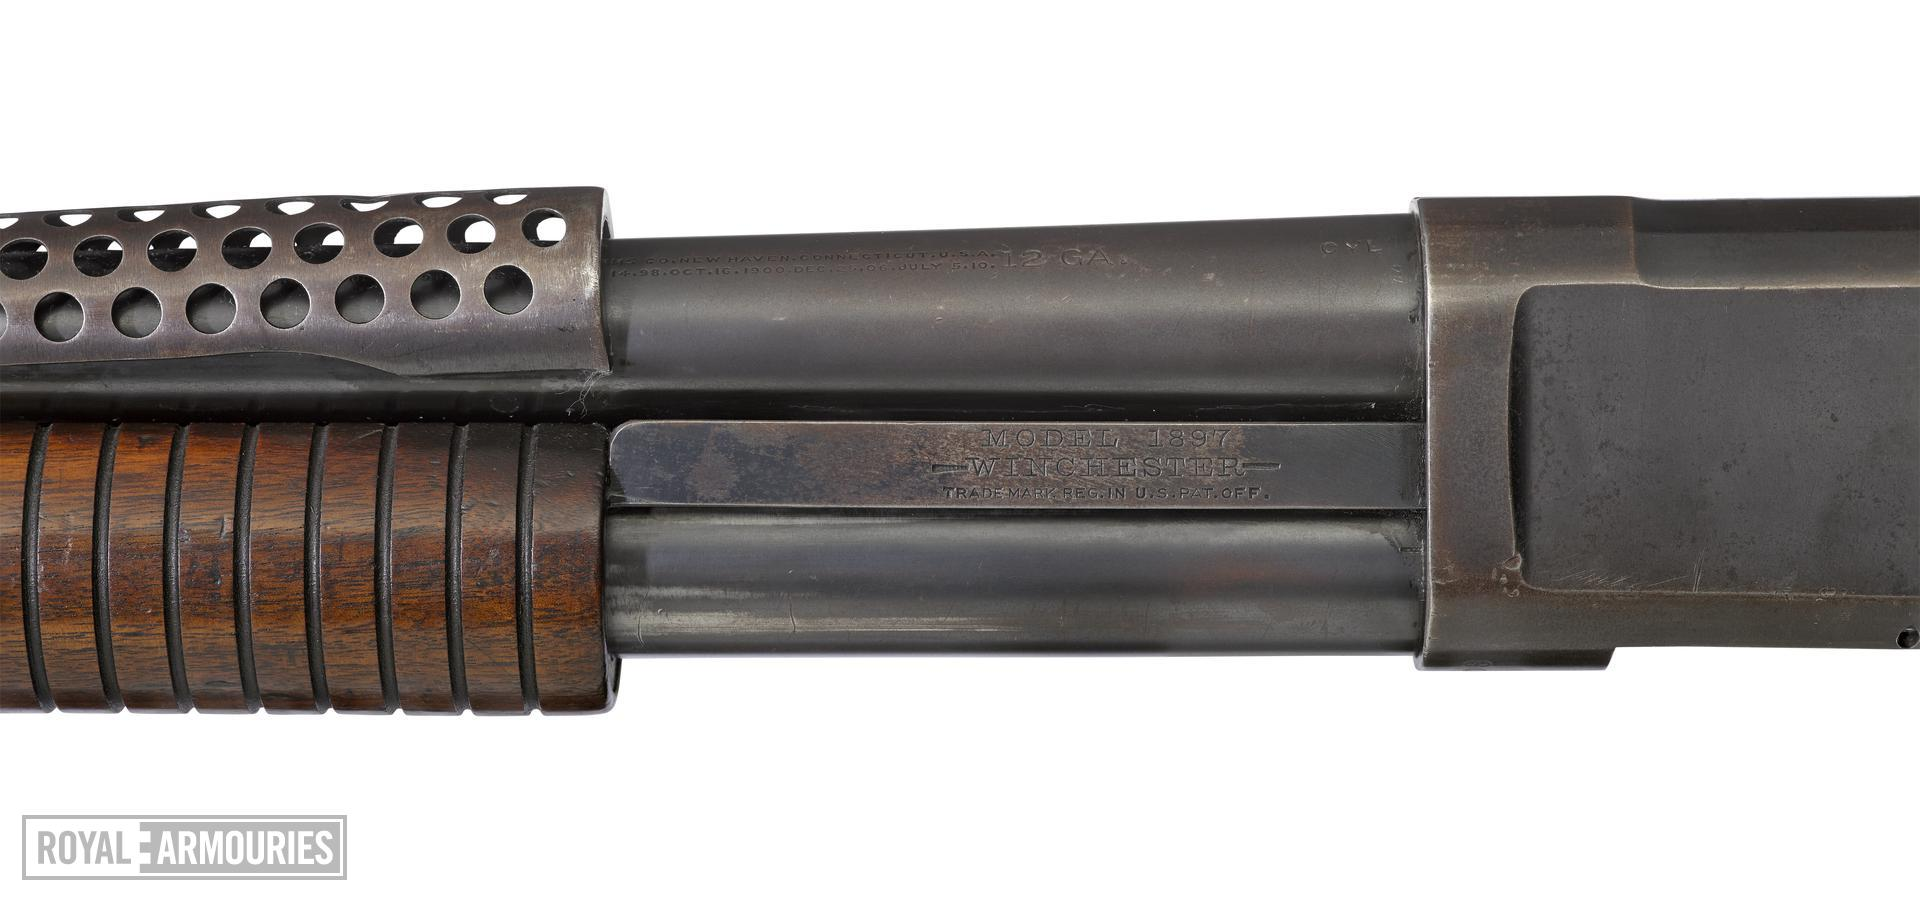 Winchester Model 1897 centrefire pump action military shotgun with model 1917 bayonet, American, 1921